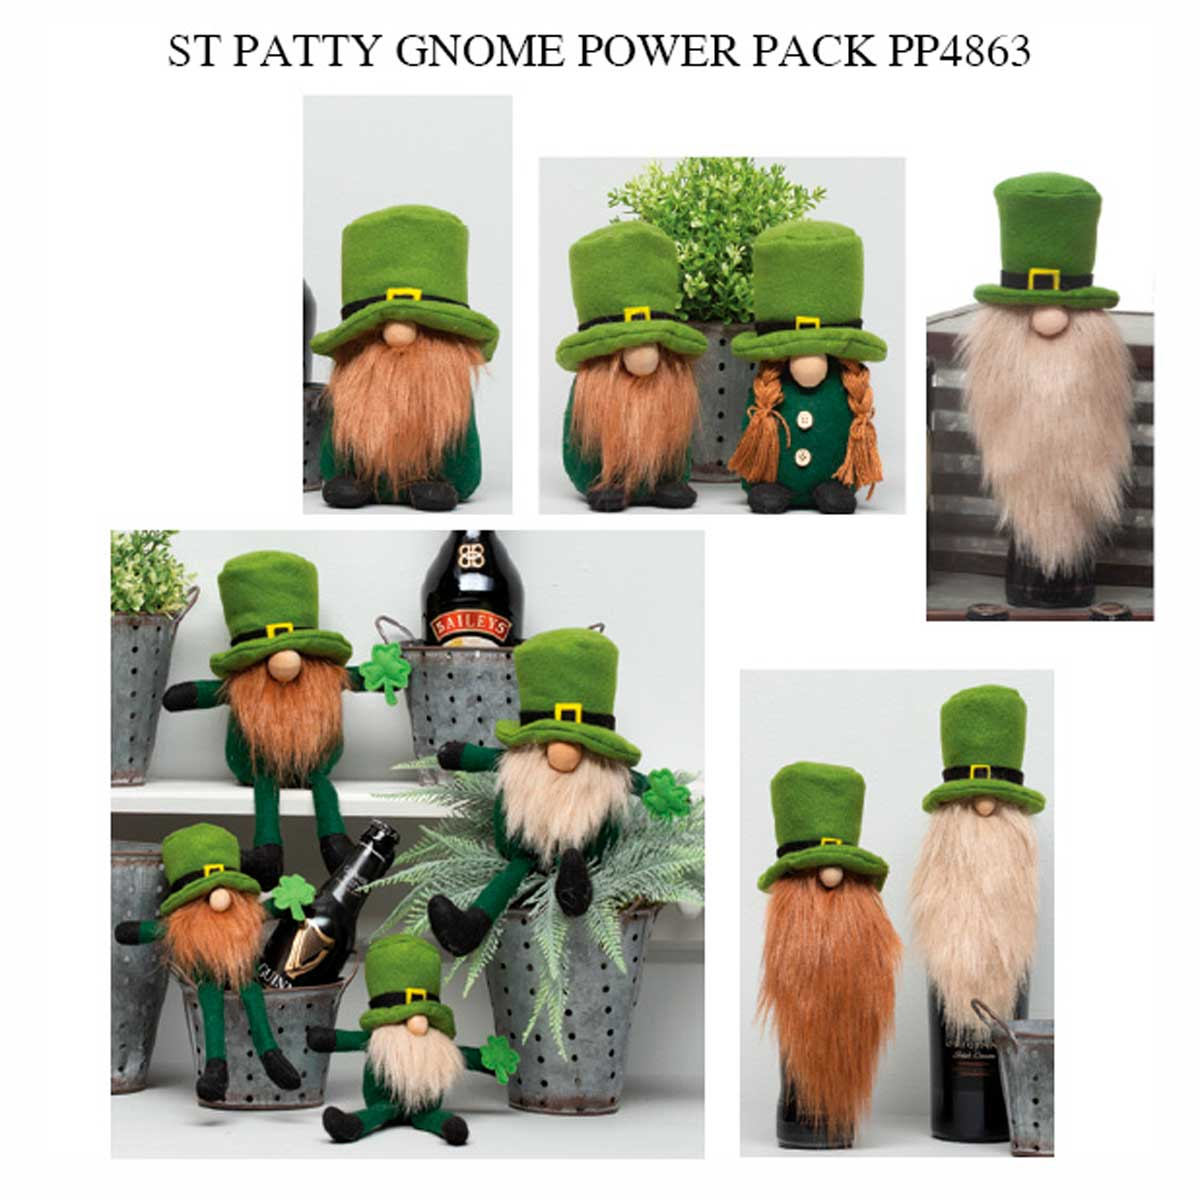 St Patty Gnome Power Pack 28 Units PP4863